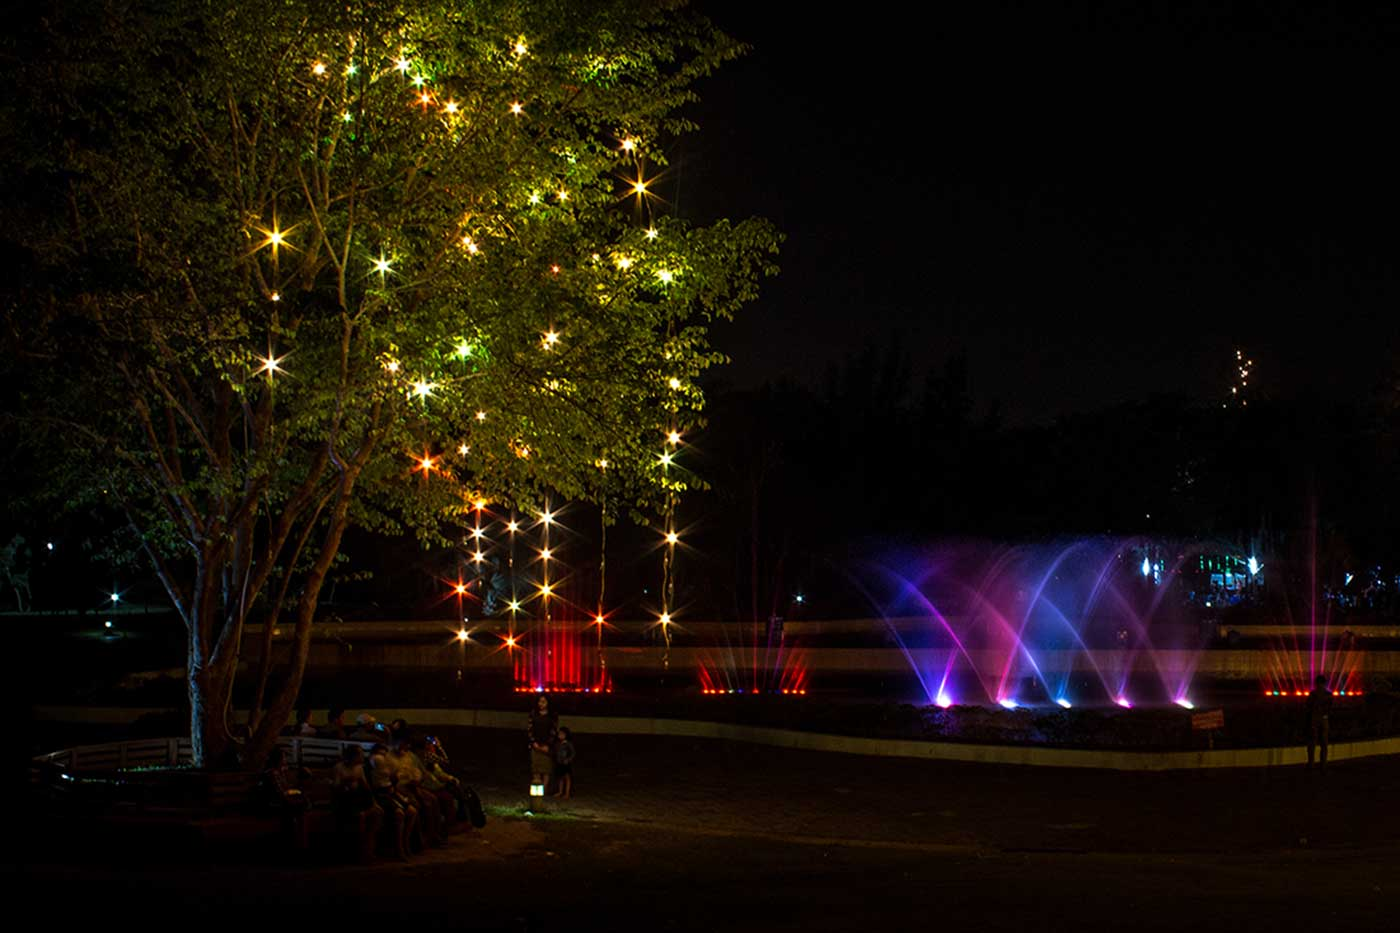 Locals relax in the Fountain Park after dark.